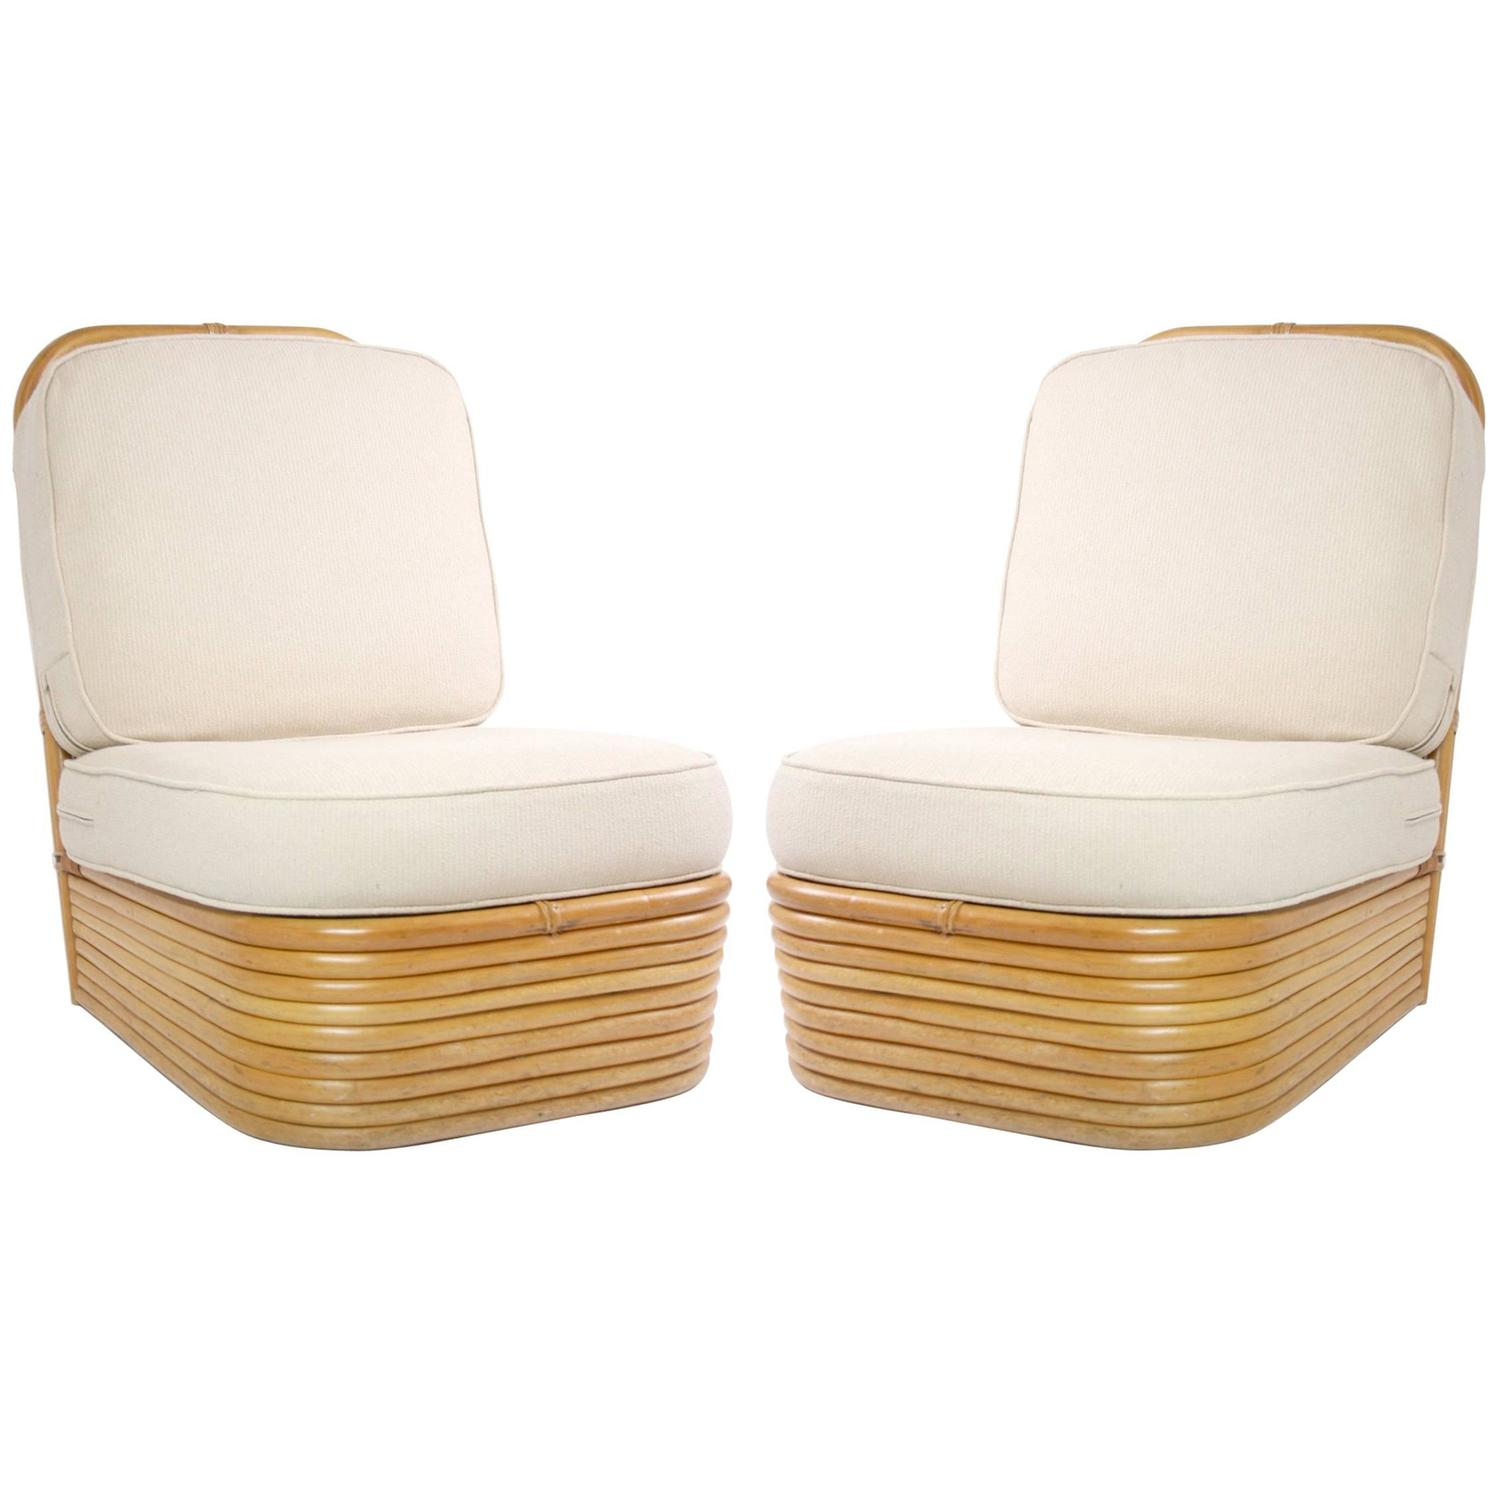 pair of paul frankl style rattan slipper chairs at 1stdibs